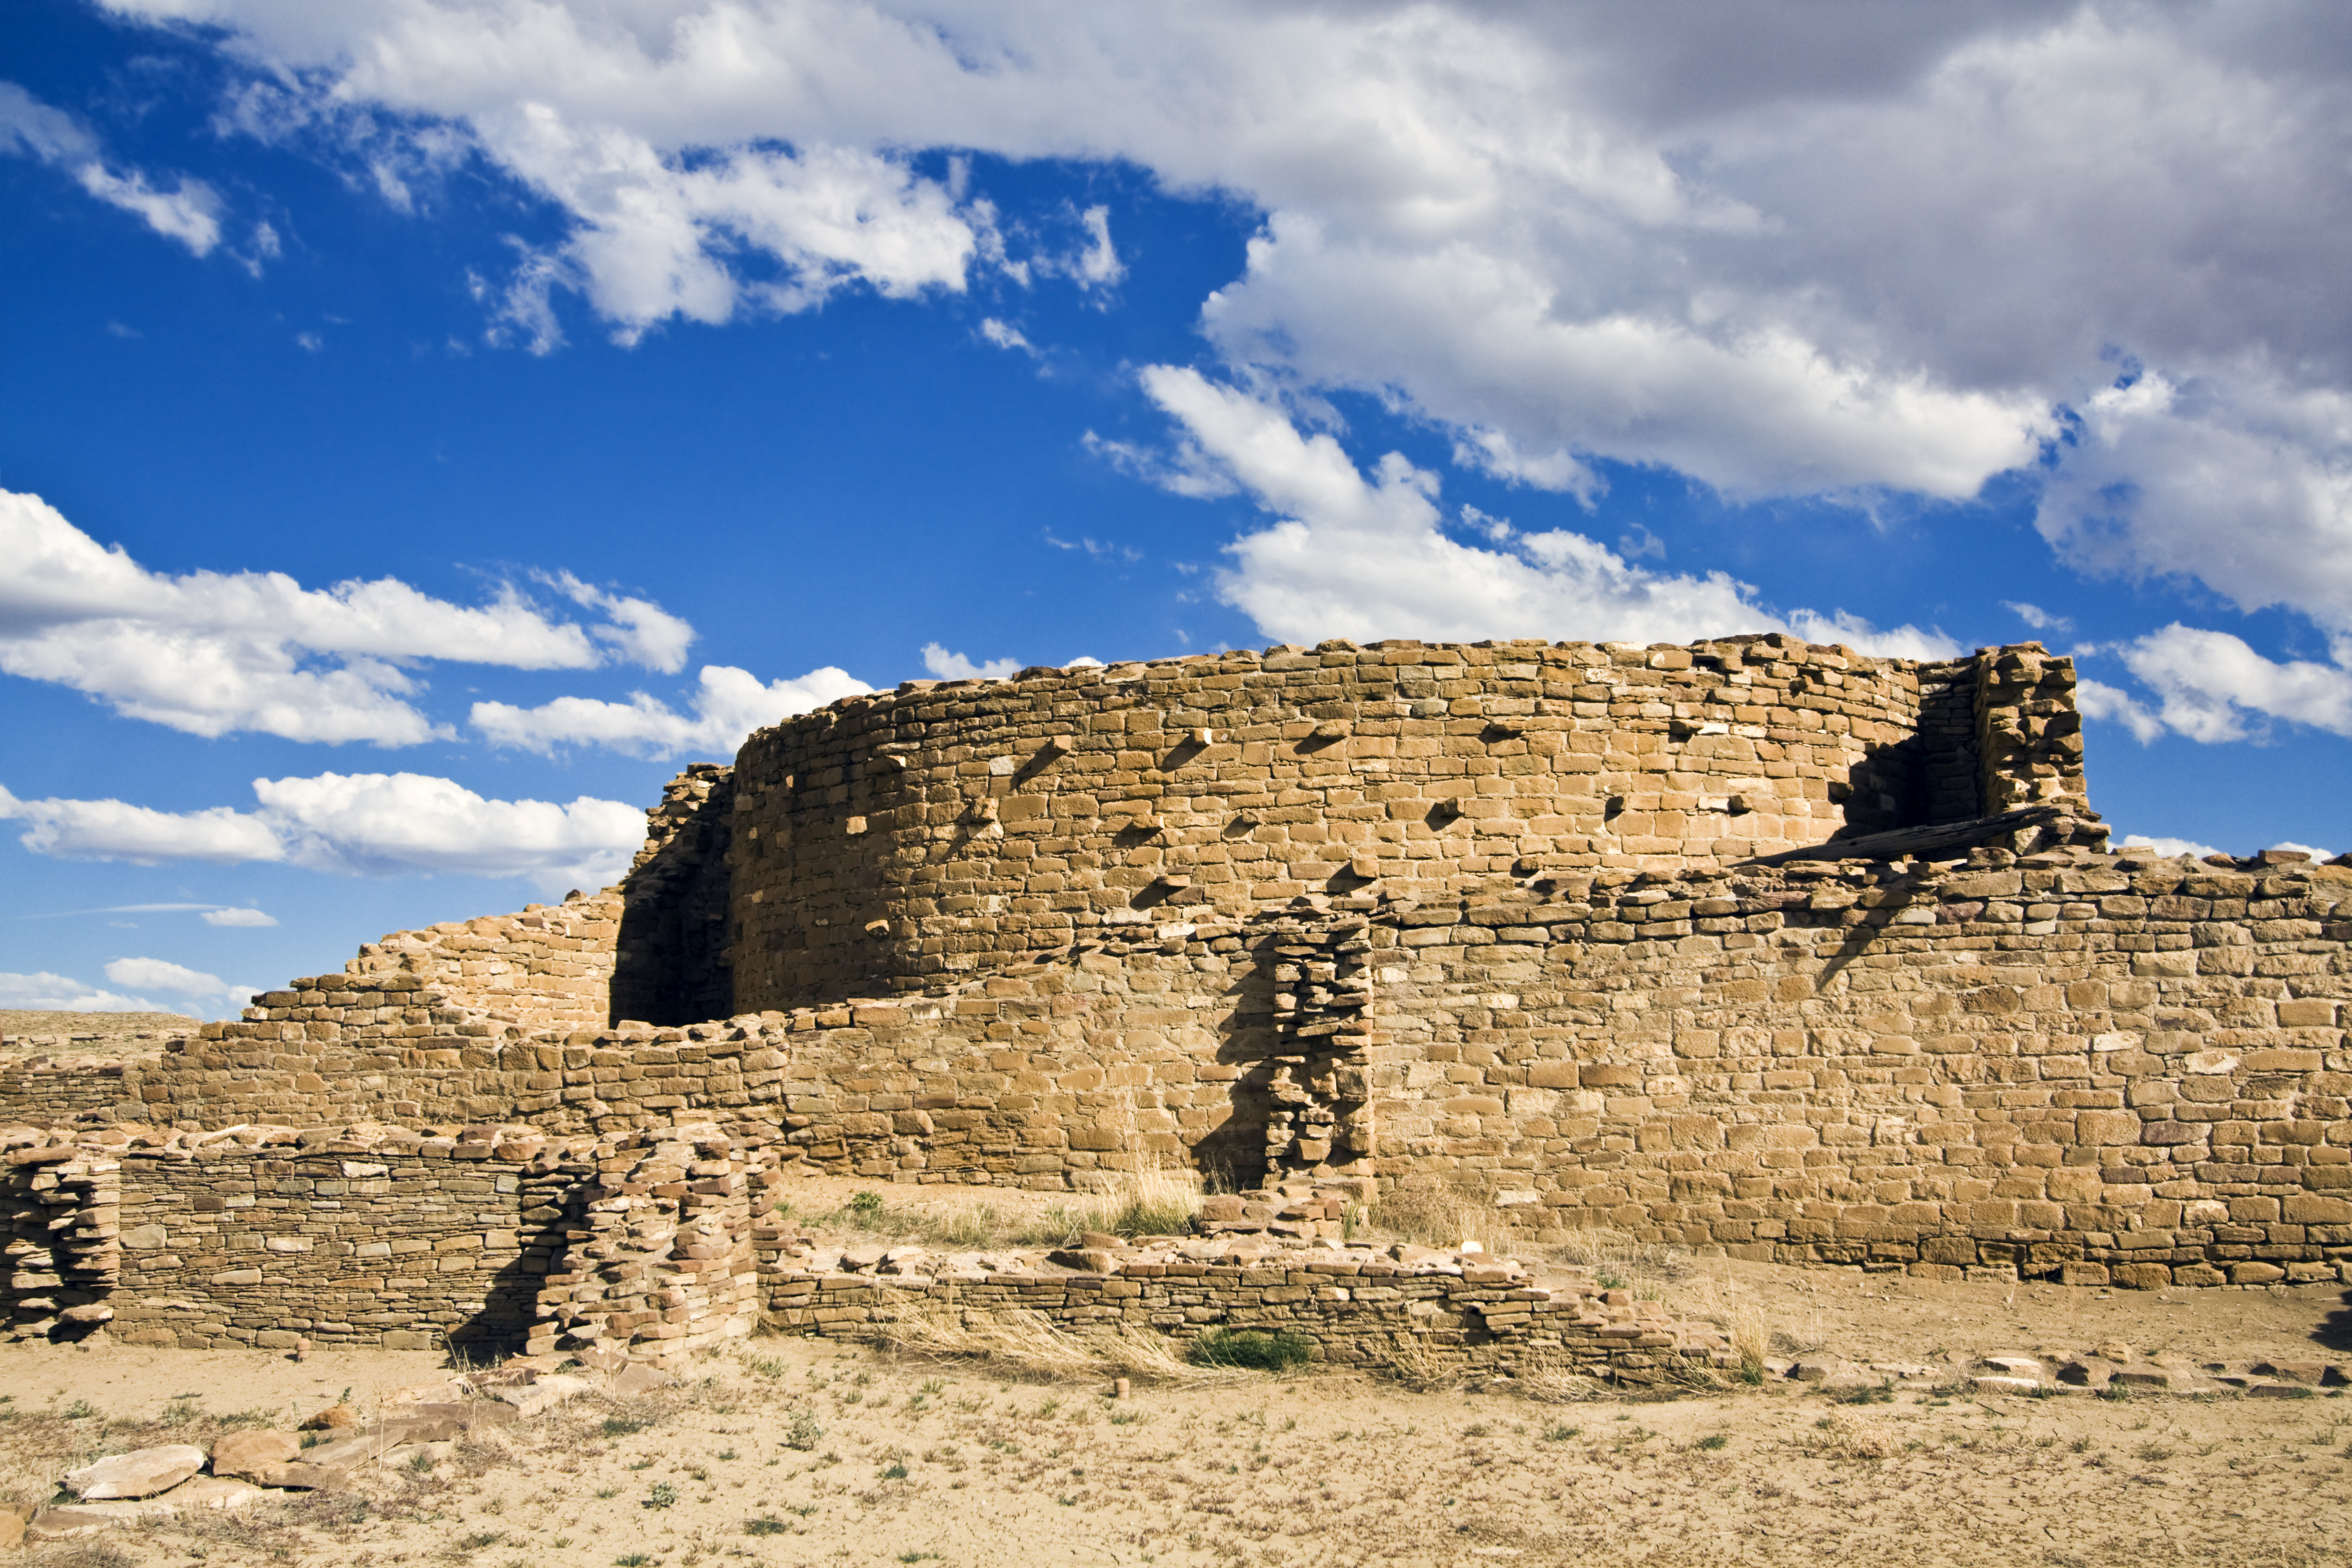 Ruins in Chaco culture, Paraguay